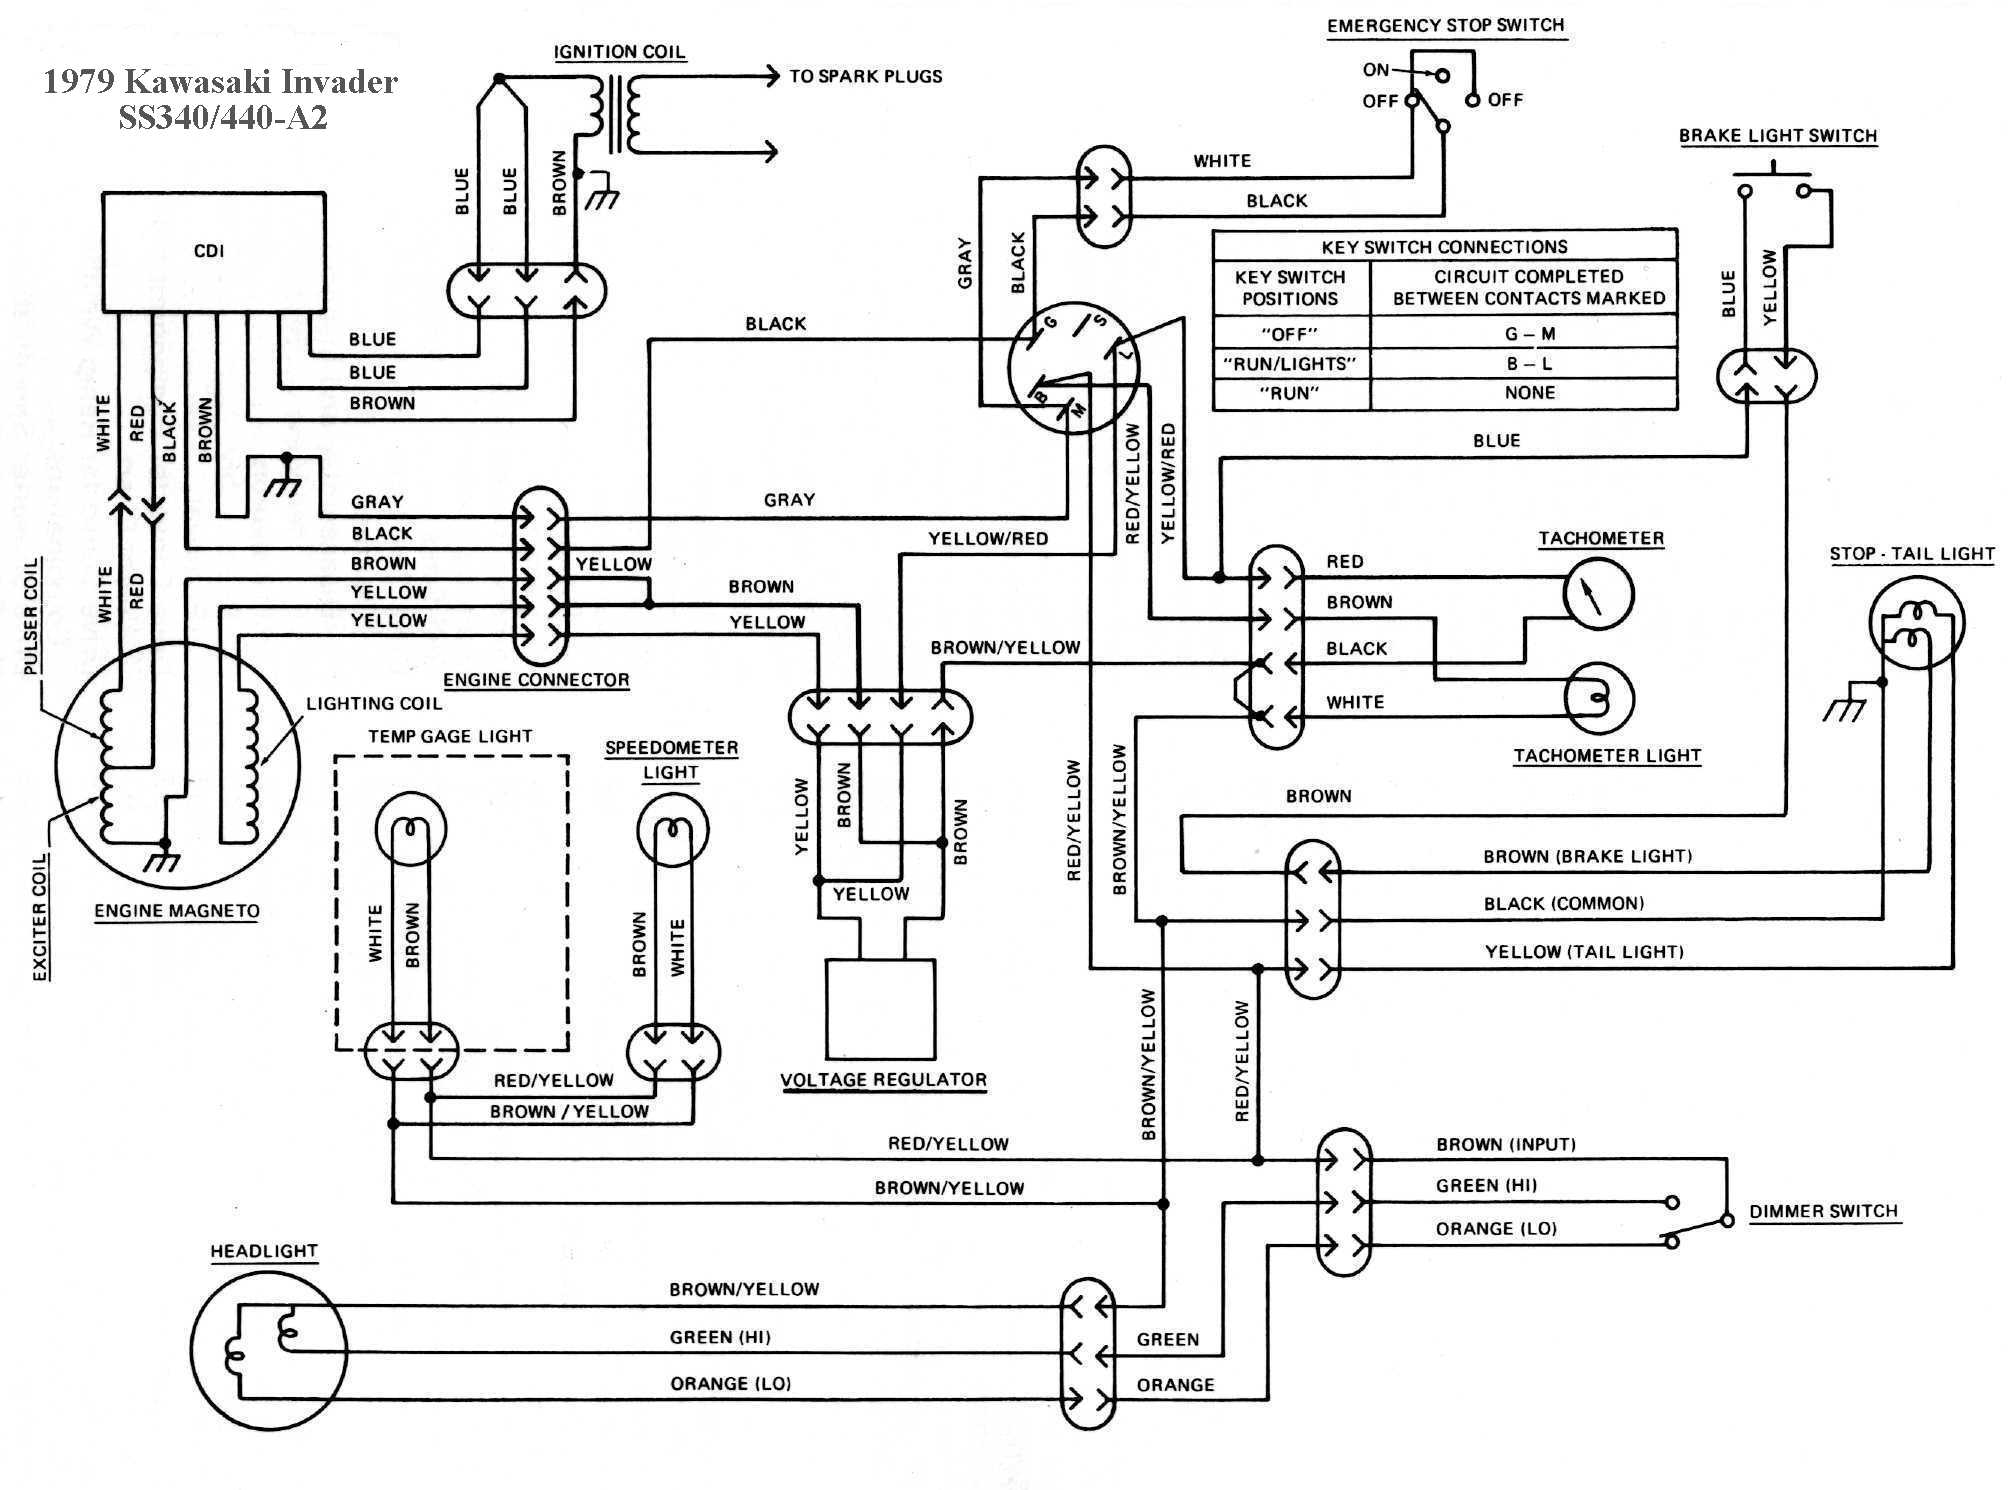 ss340a2 kawasaki invader snowmobile wiring diagrams kawasaki bayou wiring diagram at reclaimingppi.co